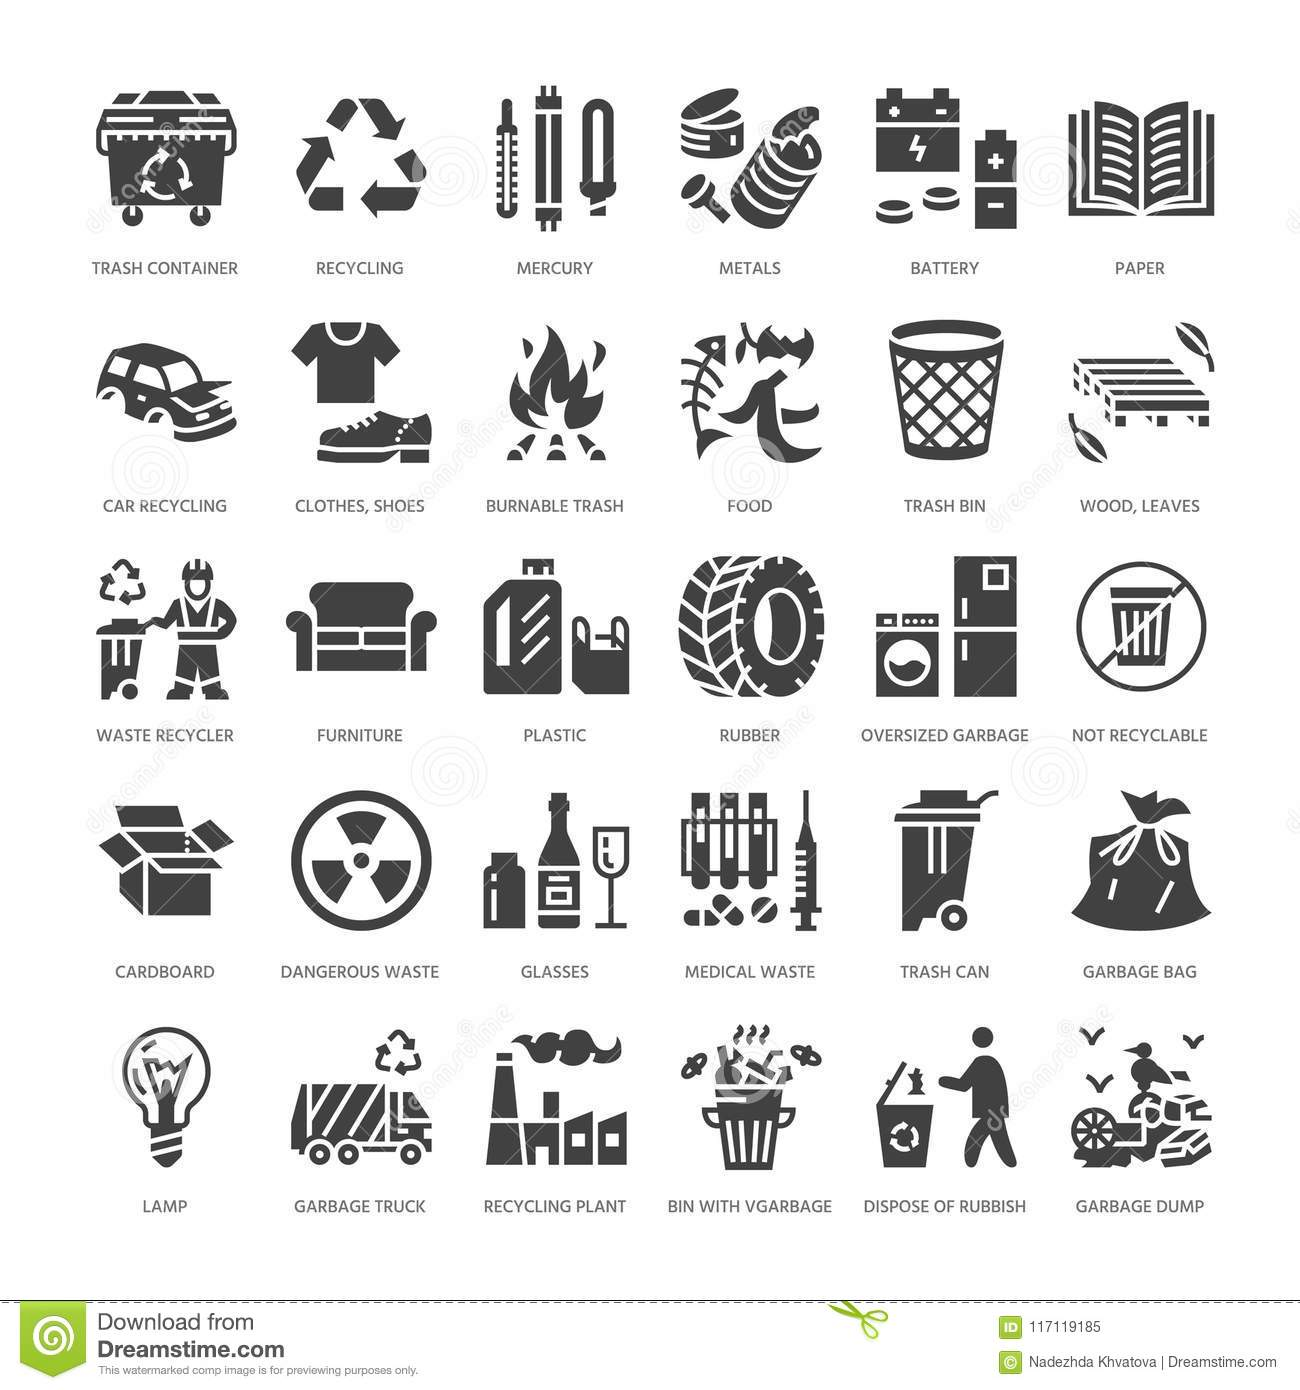 Recycling Clipart